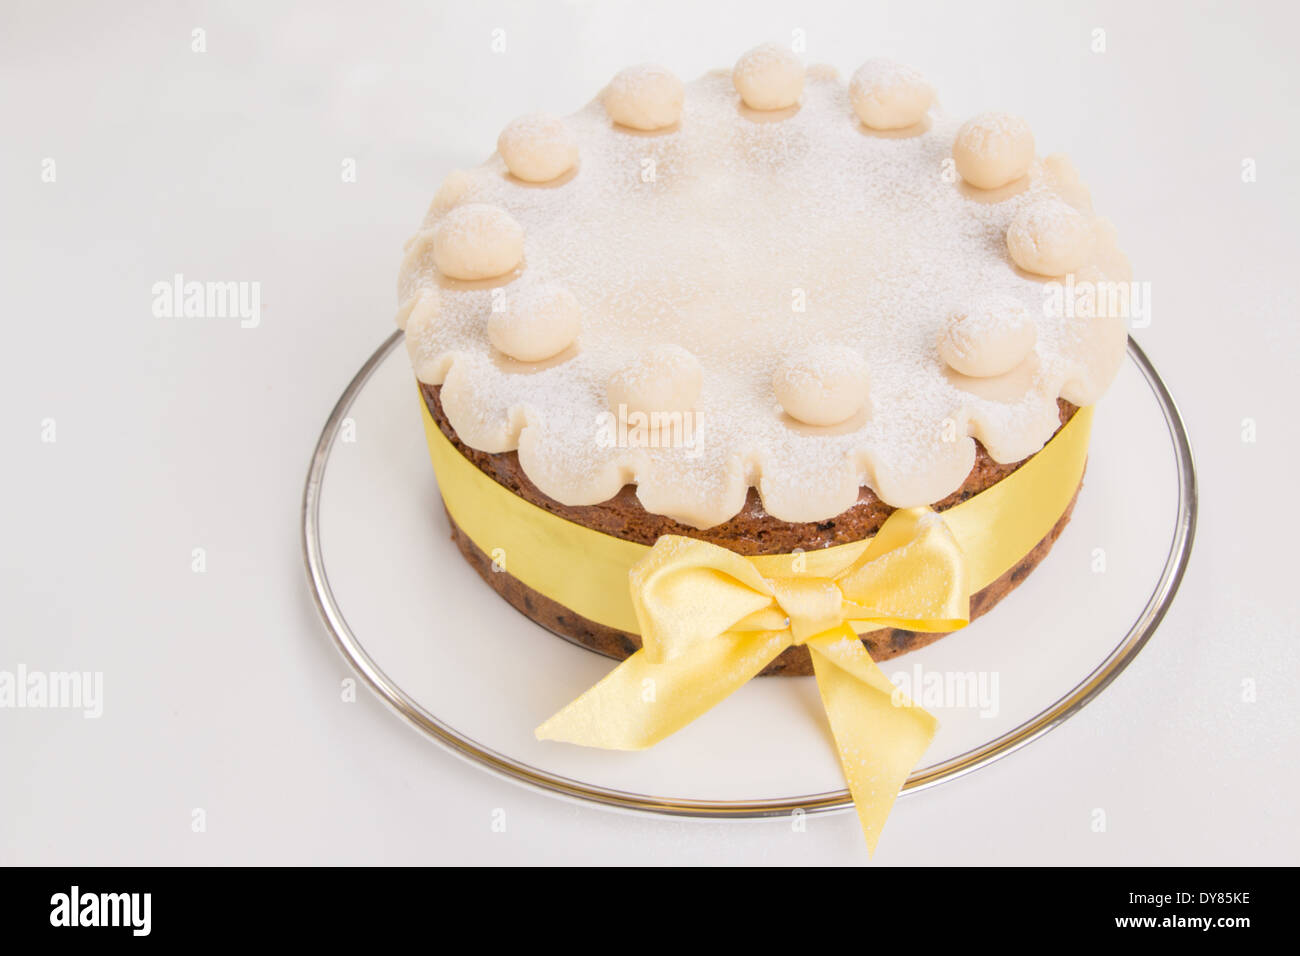 Simnel cake with basic marzipan decoration with a yellow ribbon round it sprinkled with icing sugar/powdered sugar (18 of 35) - Stock Image